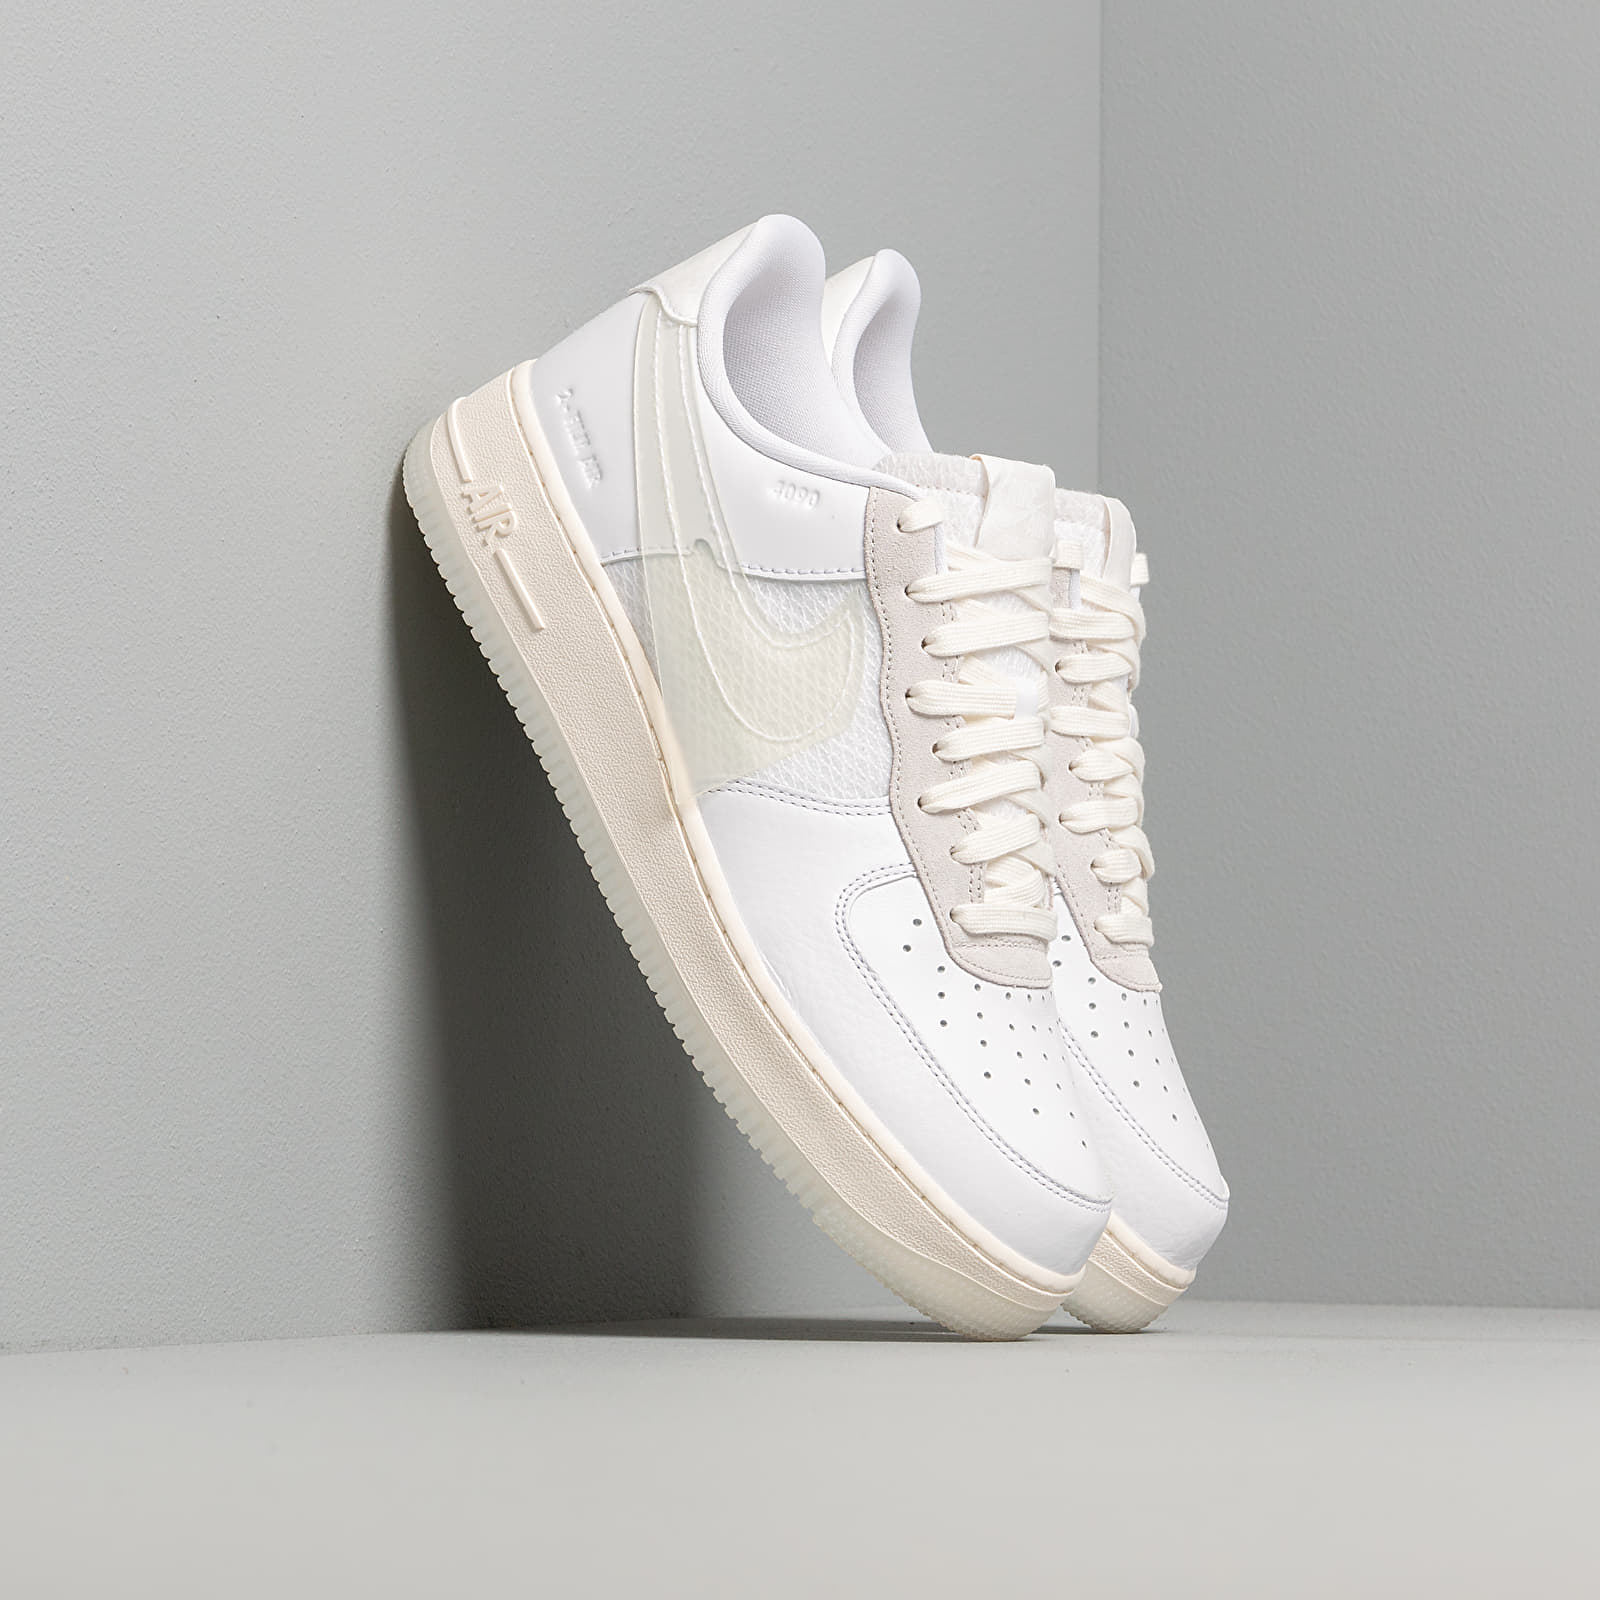 Nike Air Force 1 LV8 White White Sail Black | Footshop